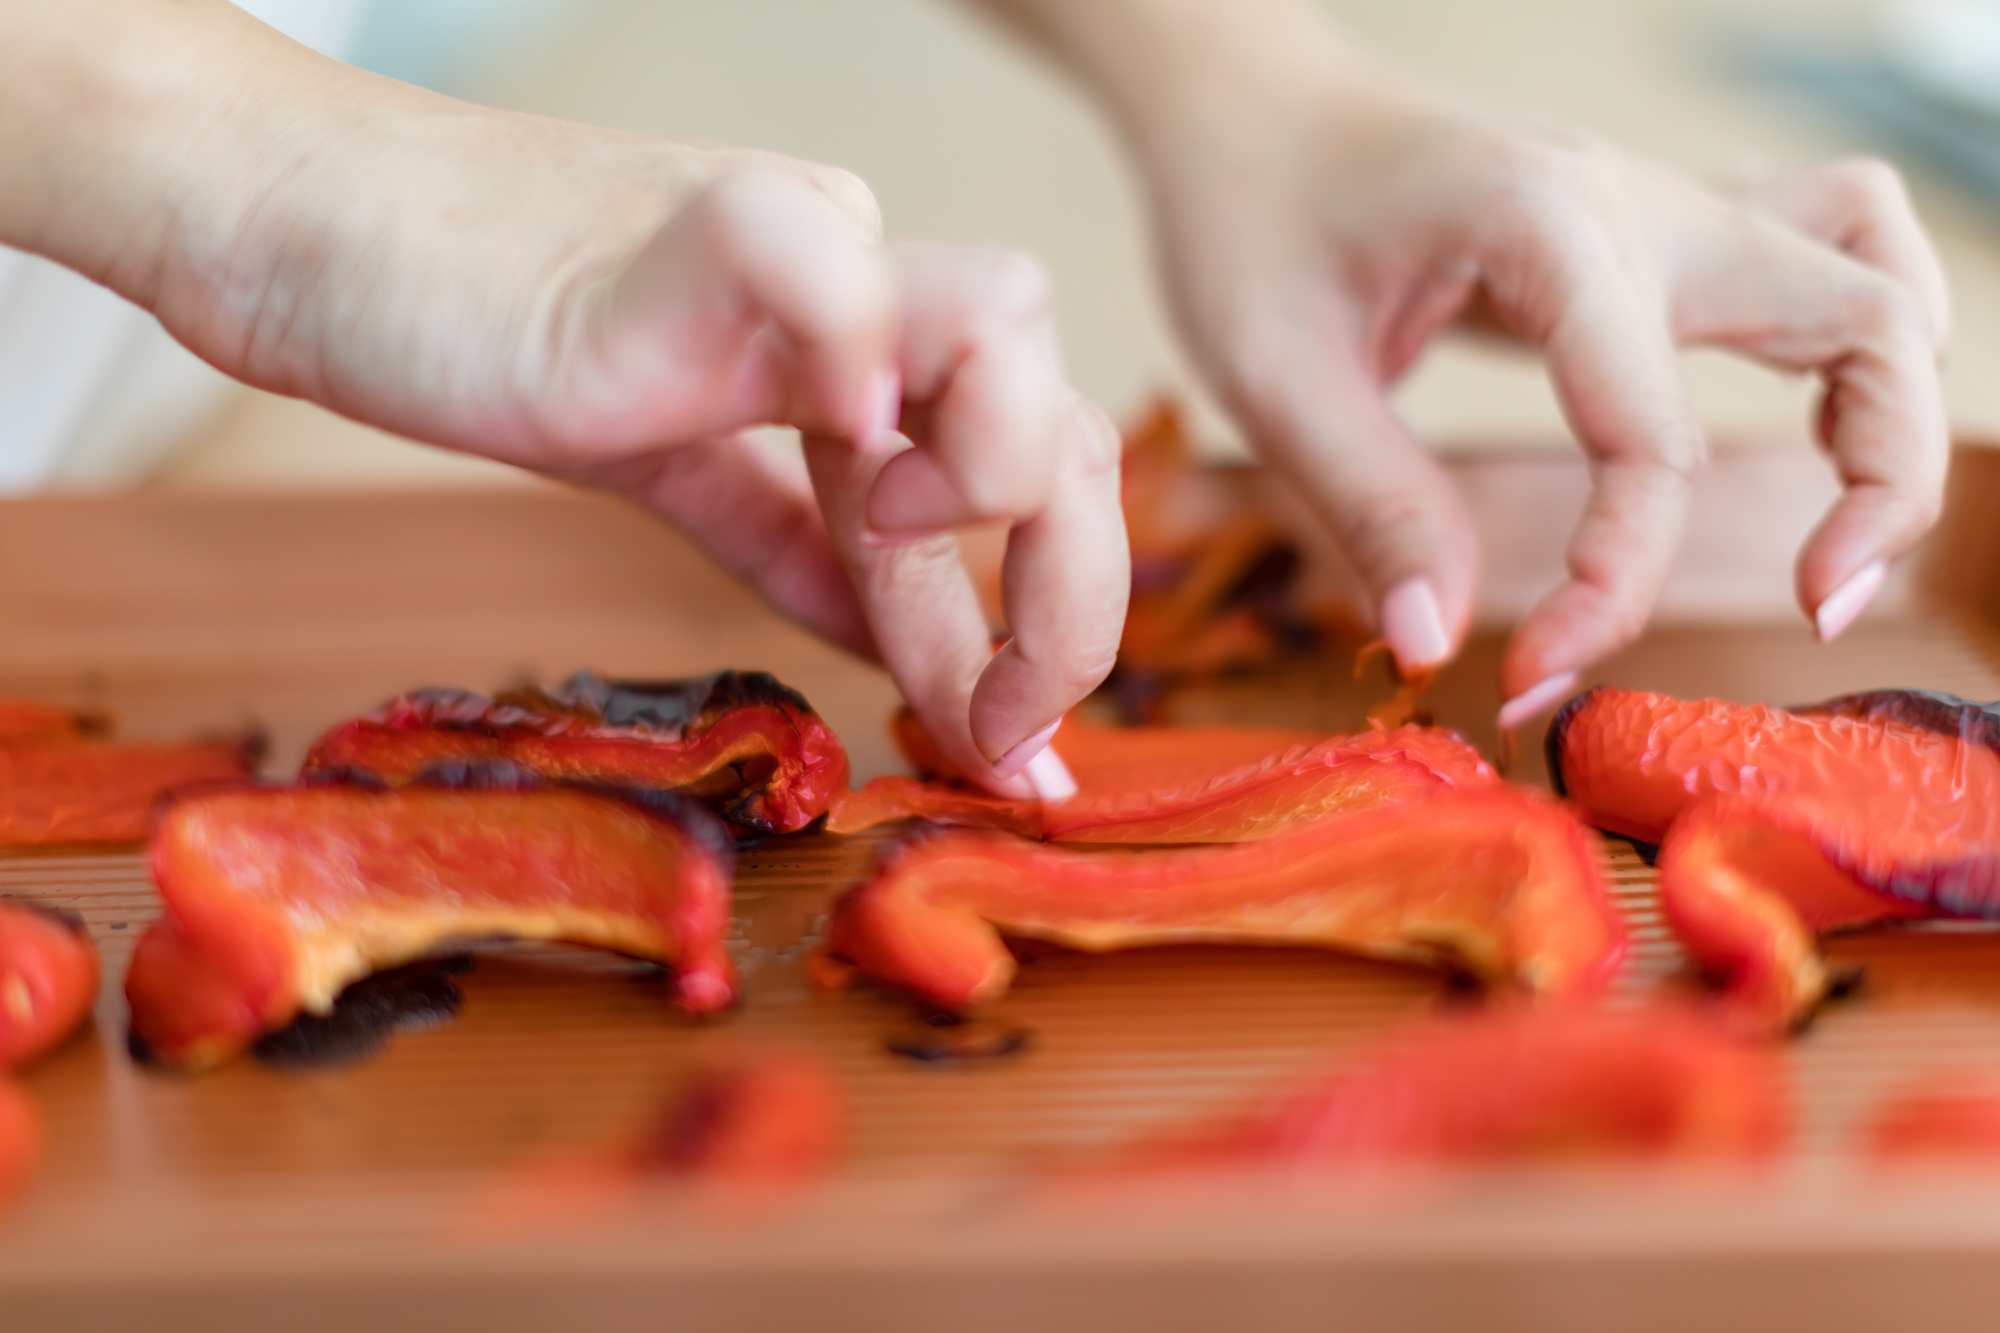 Quarter the red peppers, place them skin side up and roast them in the oven till brown to remove skin.